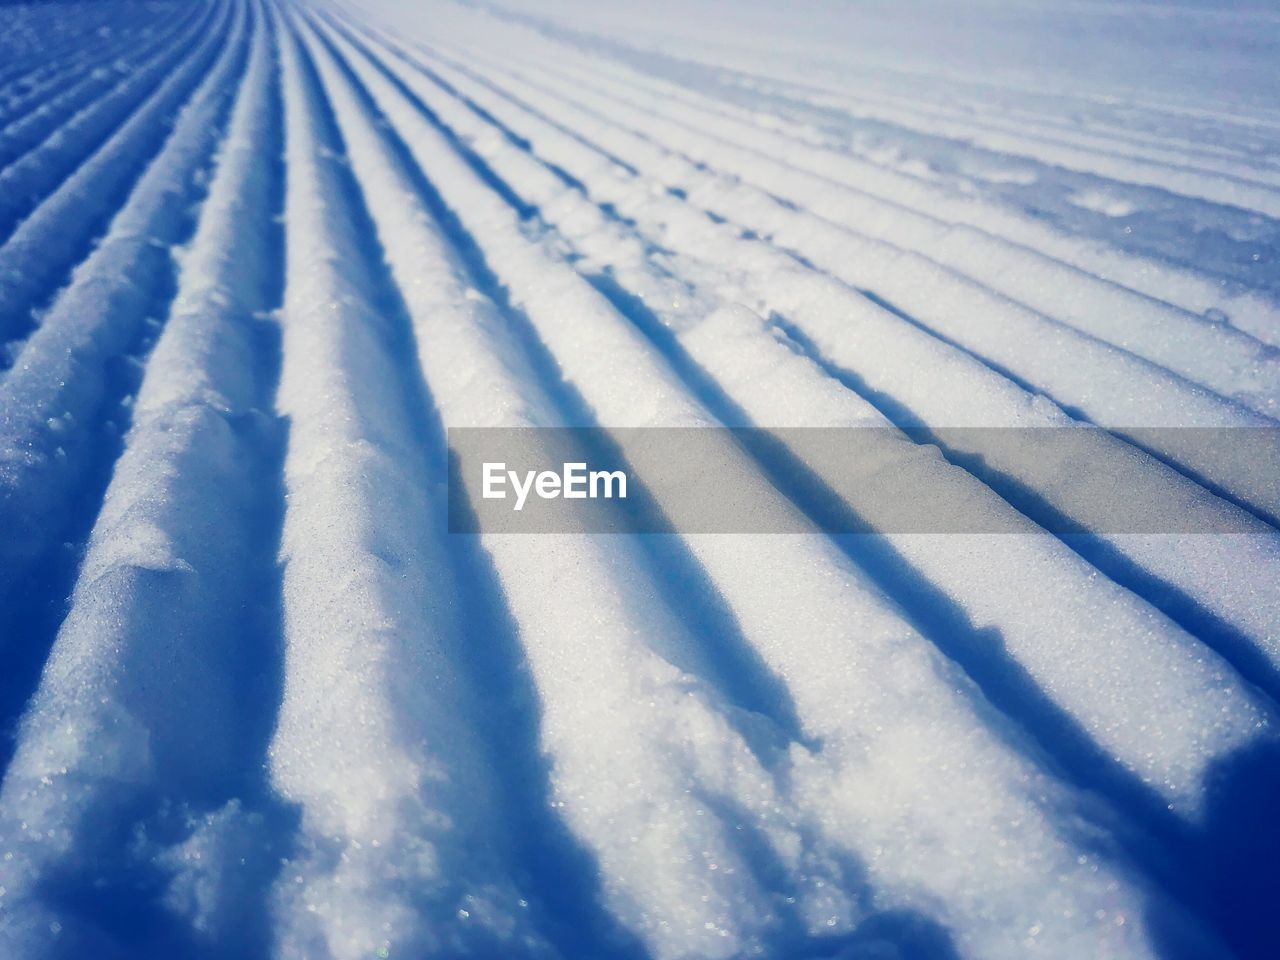 winter, snow, cold temperature, no people, nature, white color, covering, day, beauty in nature, land, pattern, ski track, field, frozen, scenics - nature, outdoors, tranquility, environment, high angle view, powder snow